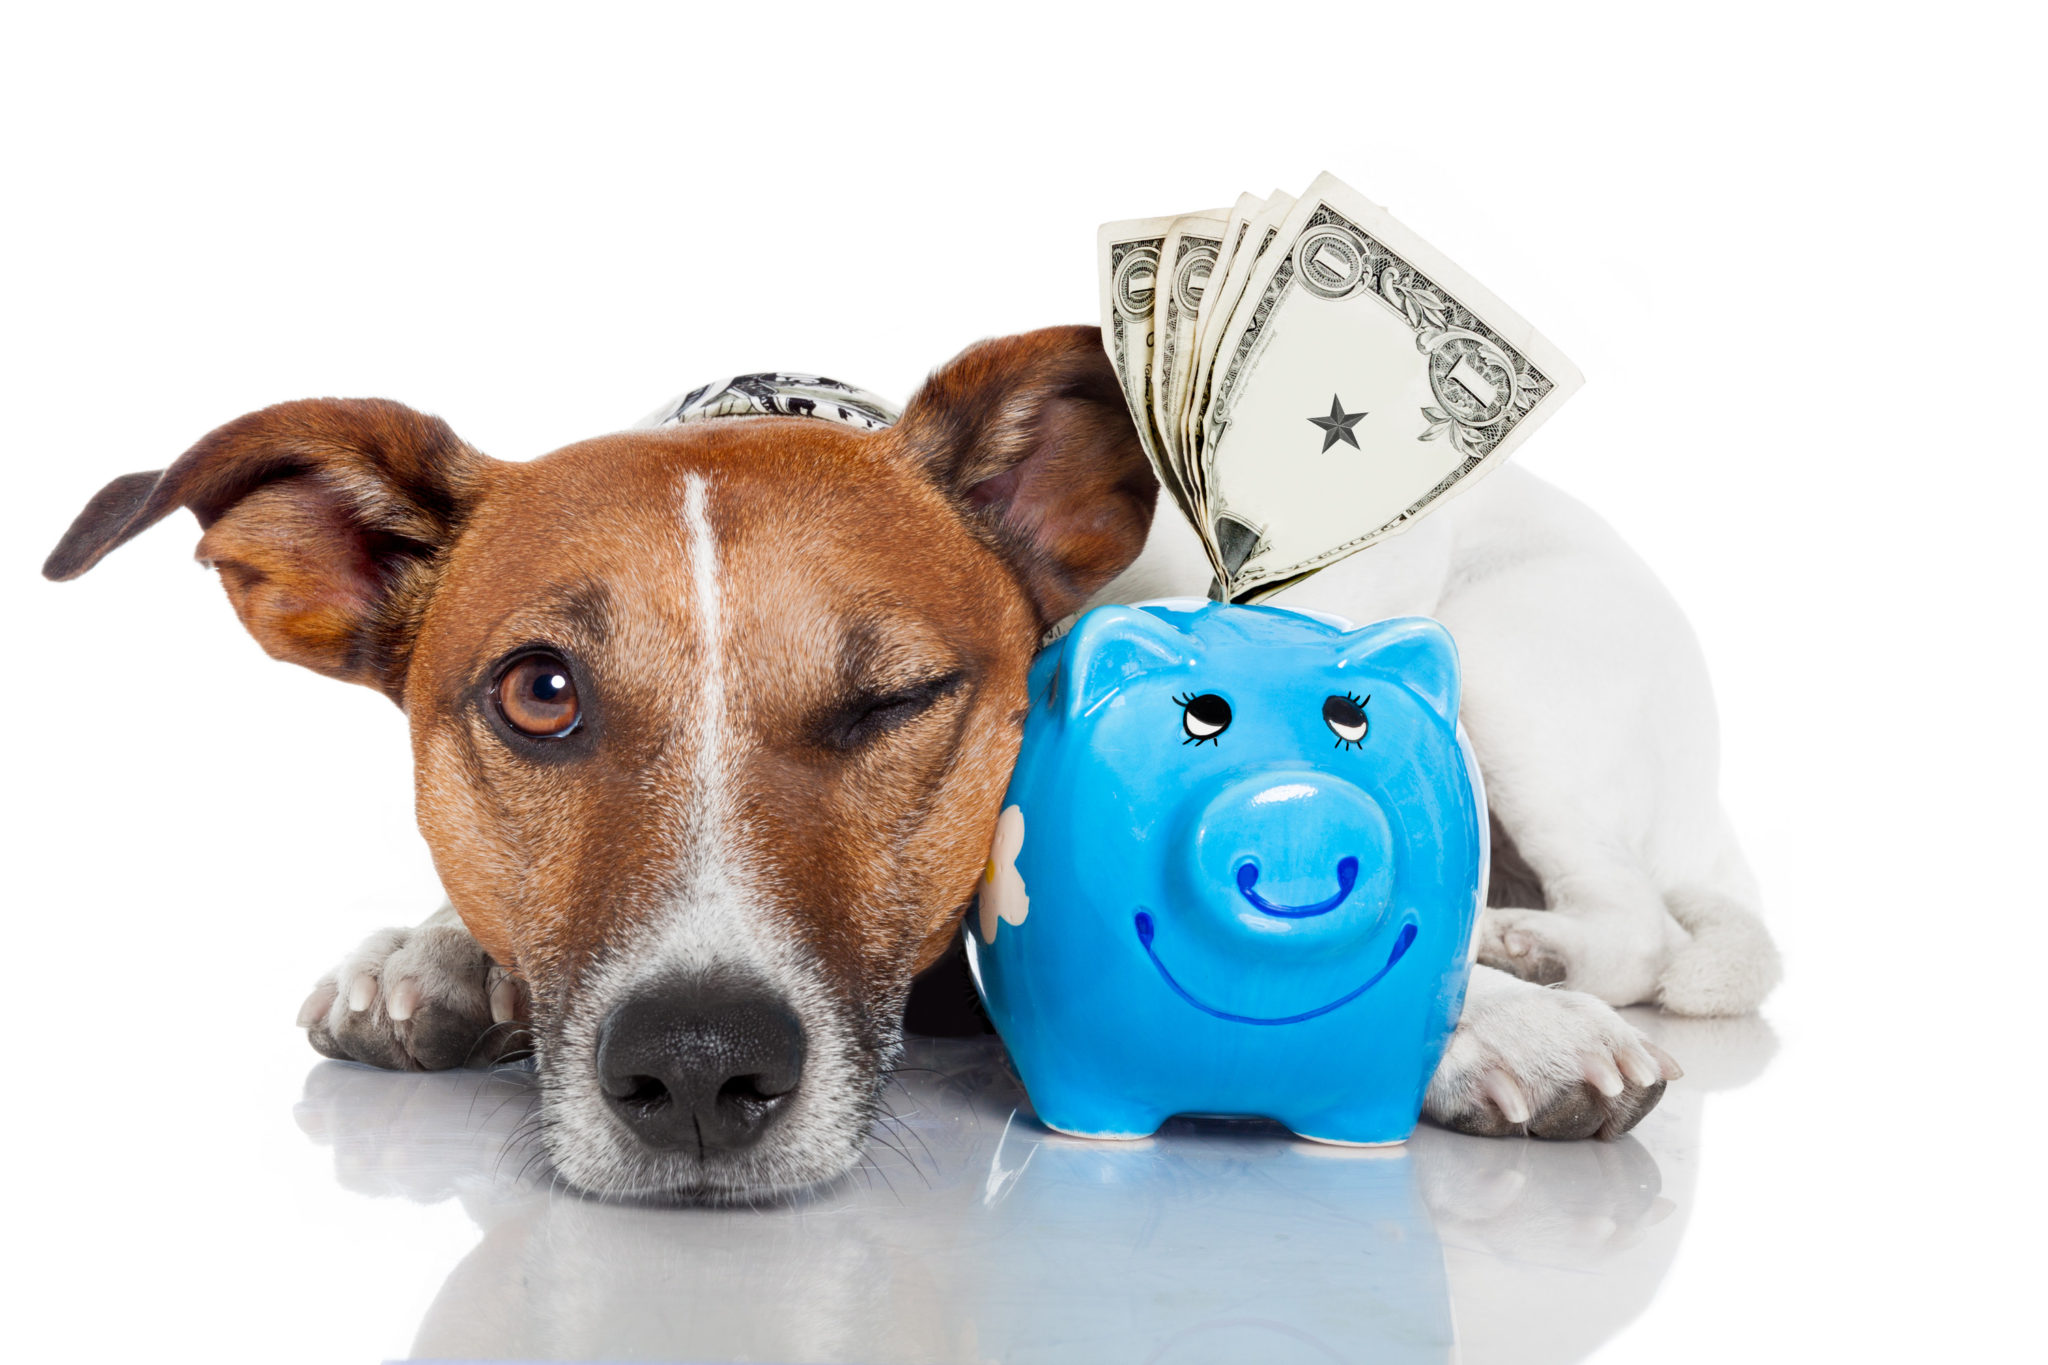 Pet Insurance - Is it For You?